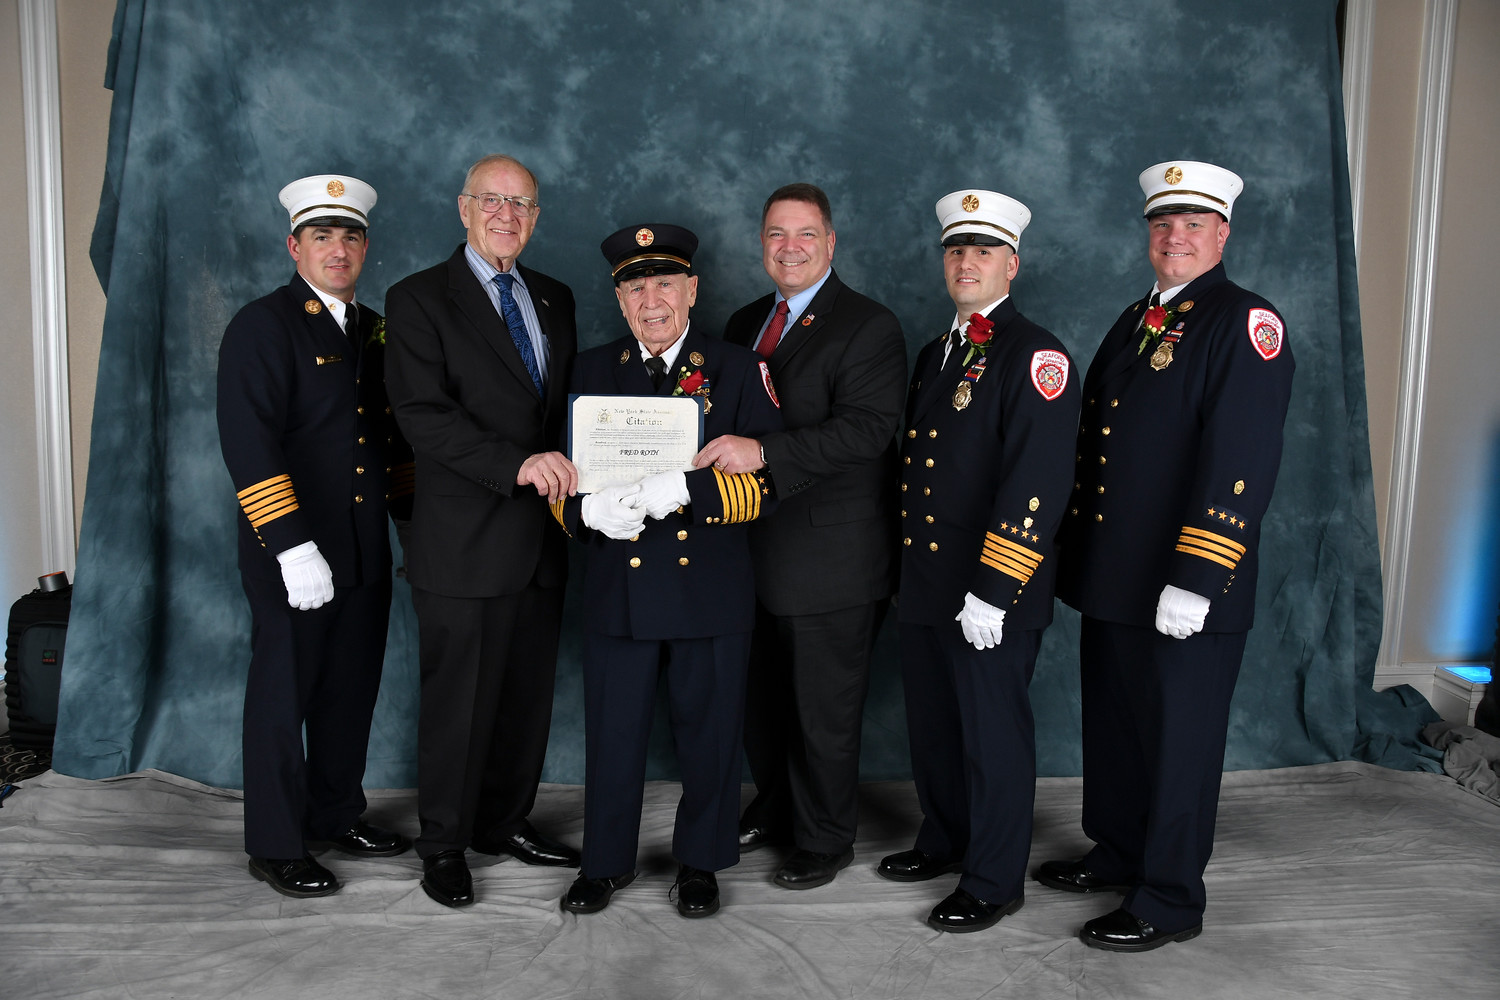 Fred Roth, 88, was honored at an April 21 installation dinner for seven decades of service with the Seaford Fire Department. From left, Chief of Department Keith Kern, Assemblyman David McDonough, Roth, Legislator Steve Rhoads, First Assistant Chief Michael Bellissimo and Second Assistant Chief Thomas De Haan.